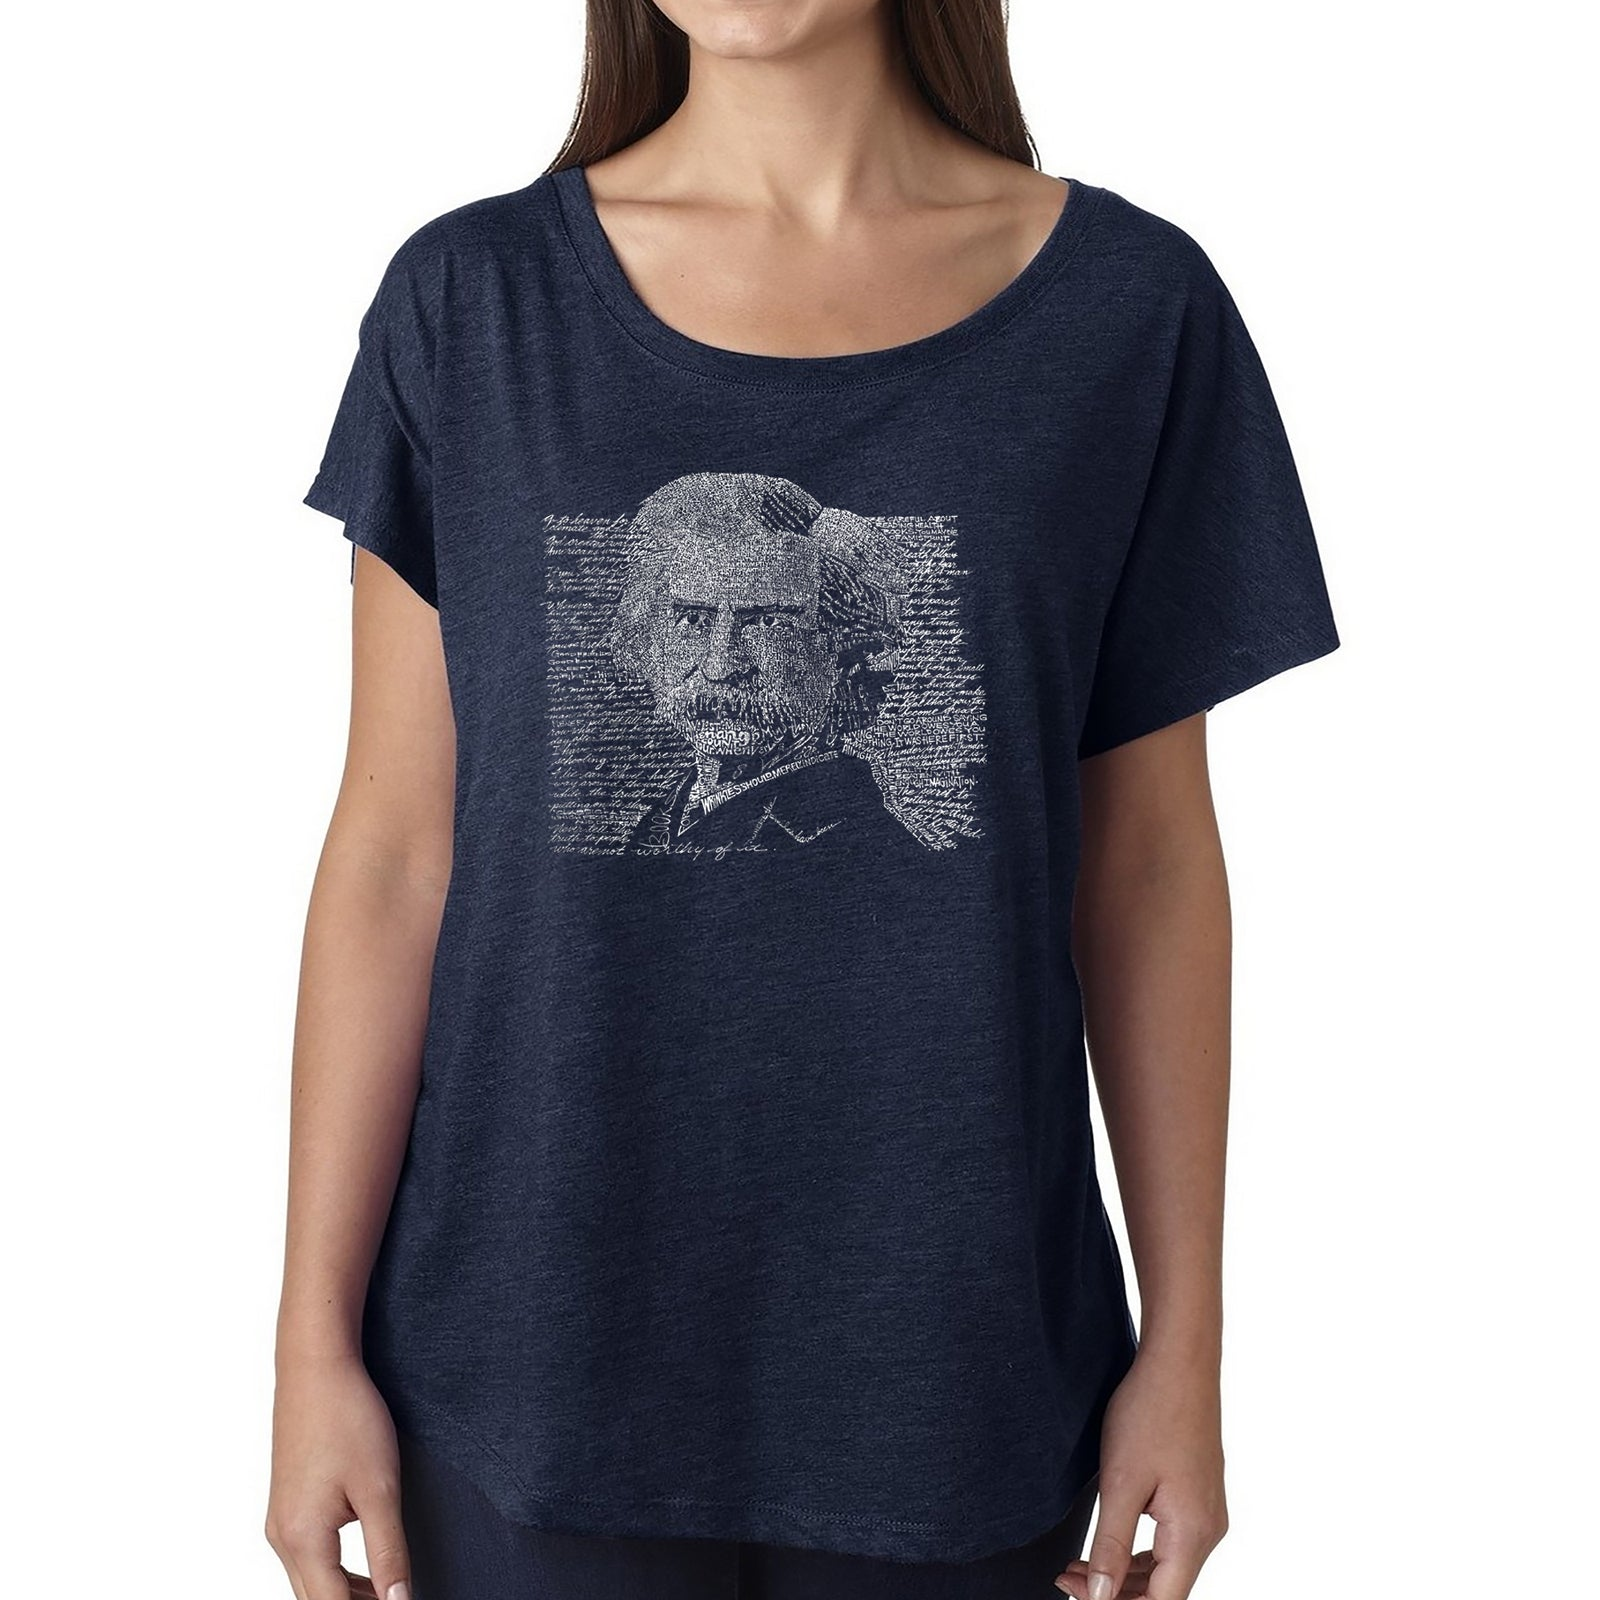 Women's Loose Fit Dolman Cut Word Art Shirt - Mark Twain